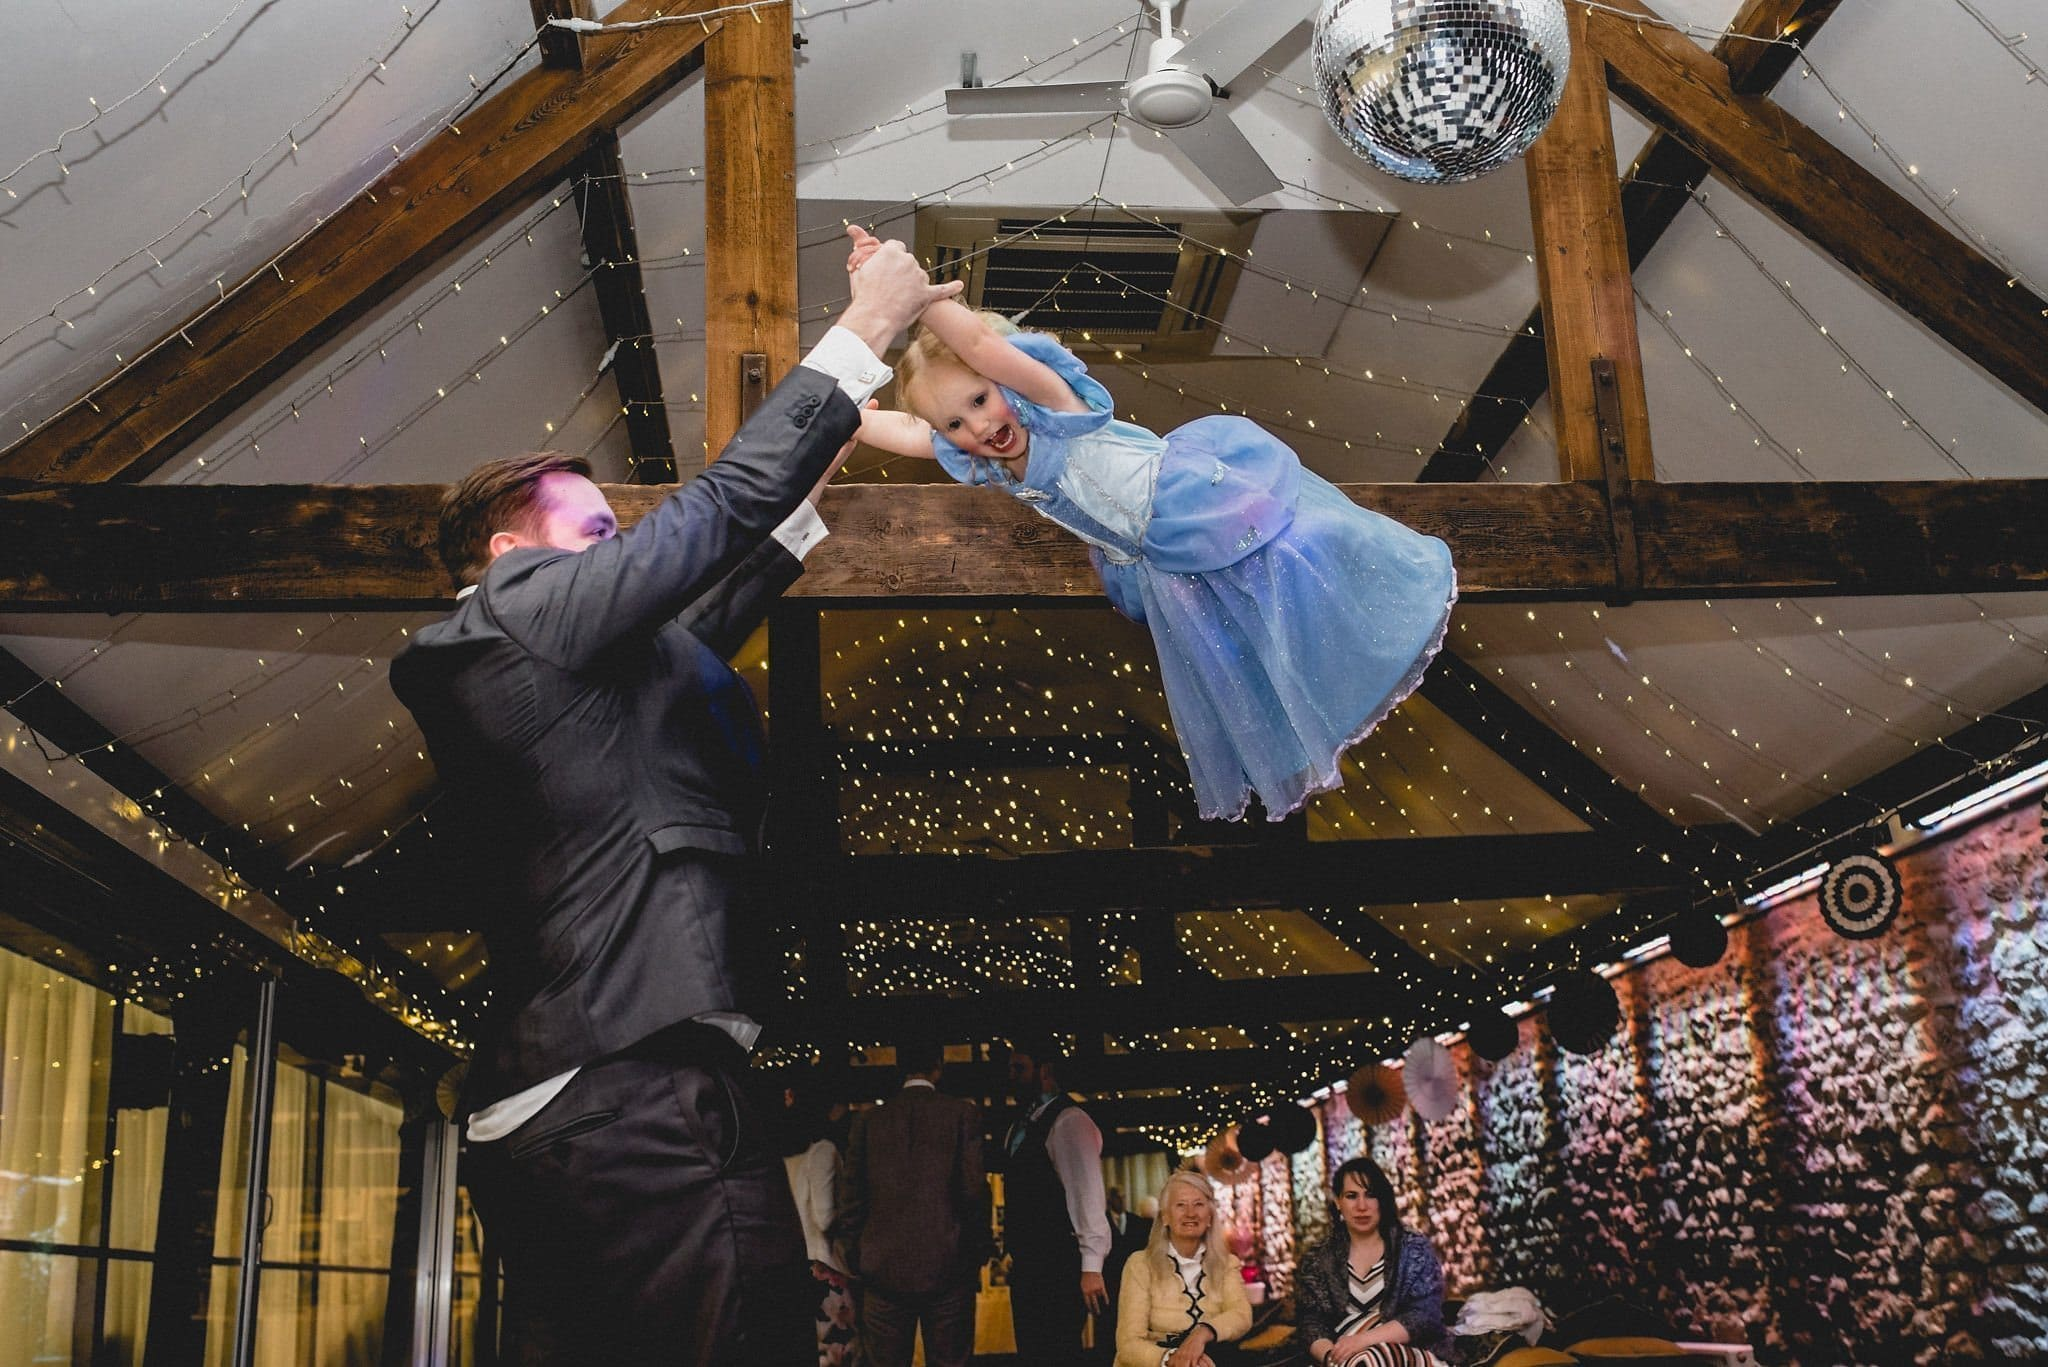 One of the children is swung high into the air on the dancefloor at Birtsmorton Court